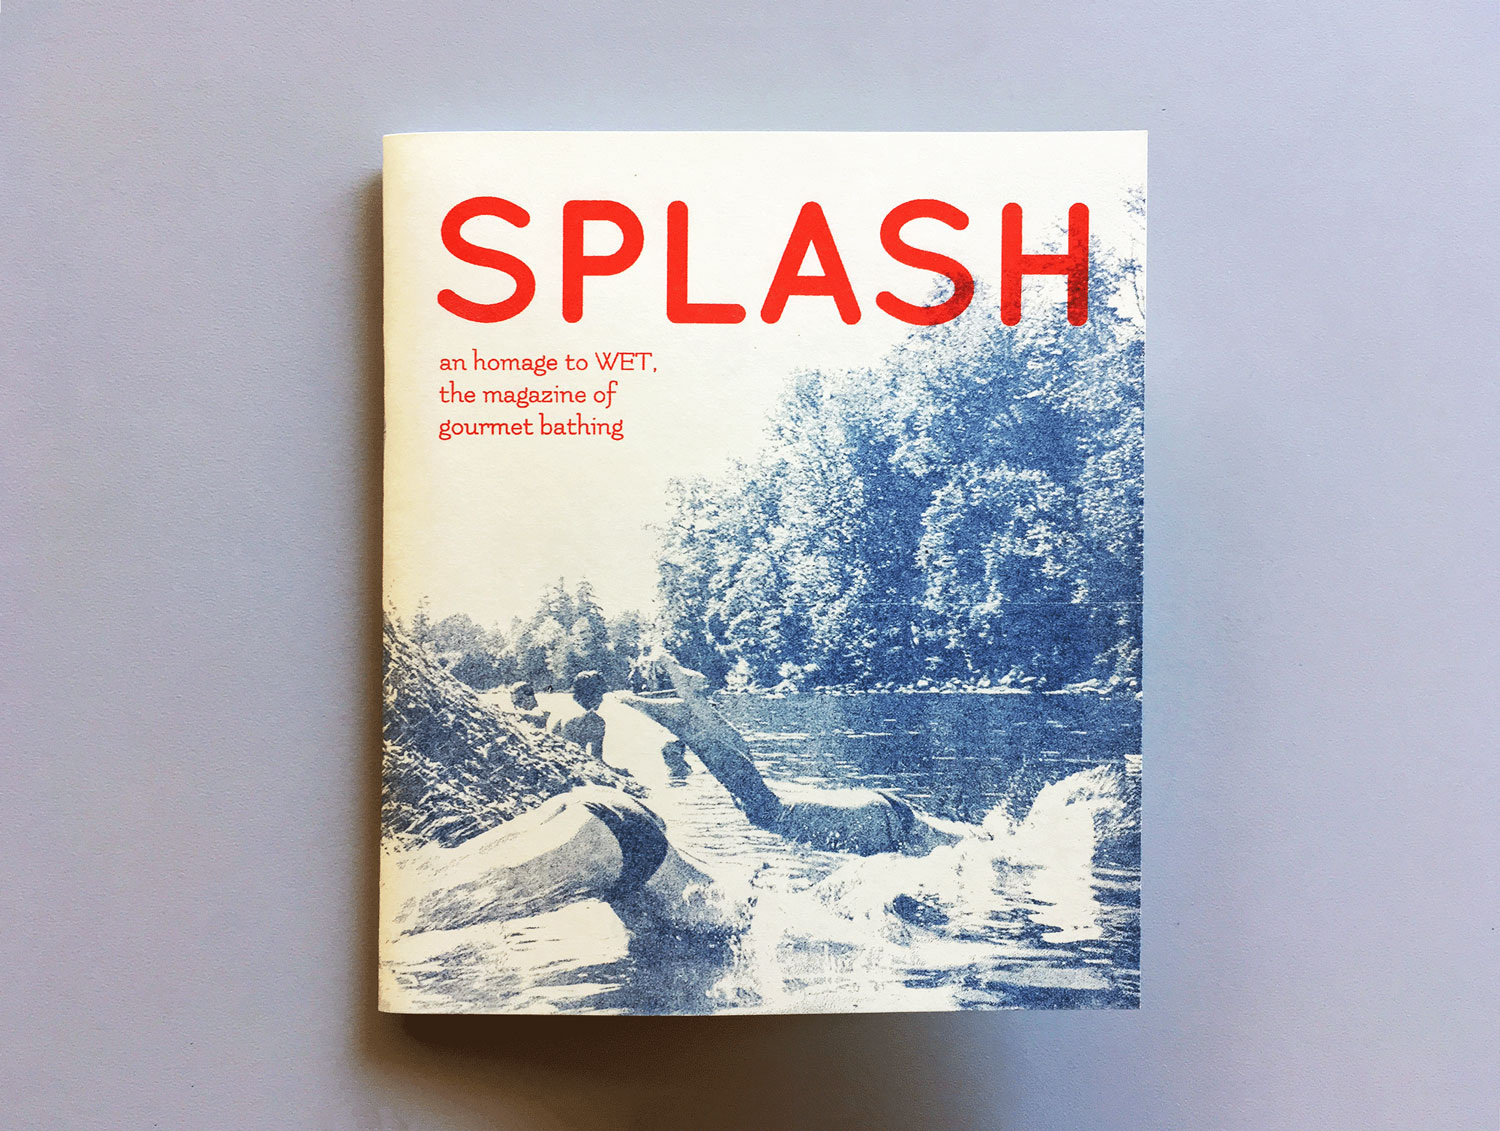 Cover of a zine titled SPLASH an homage to WET, the magazine of gourmet bathing